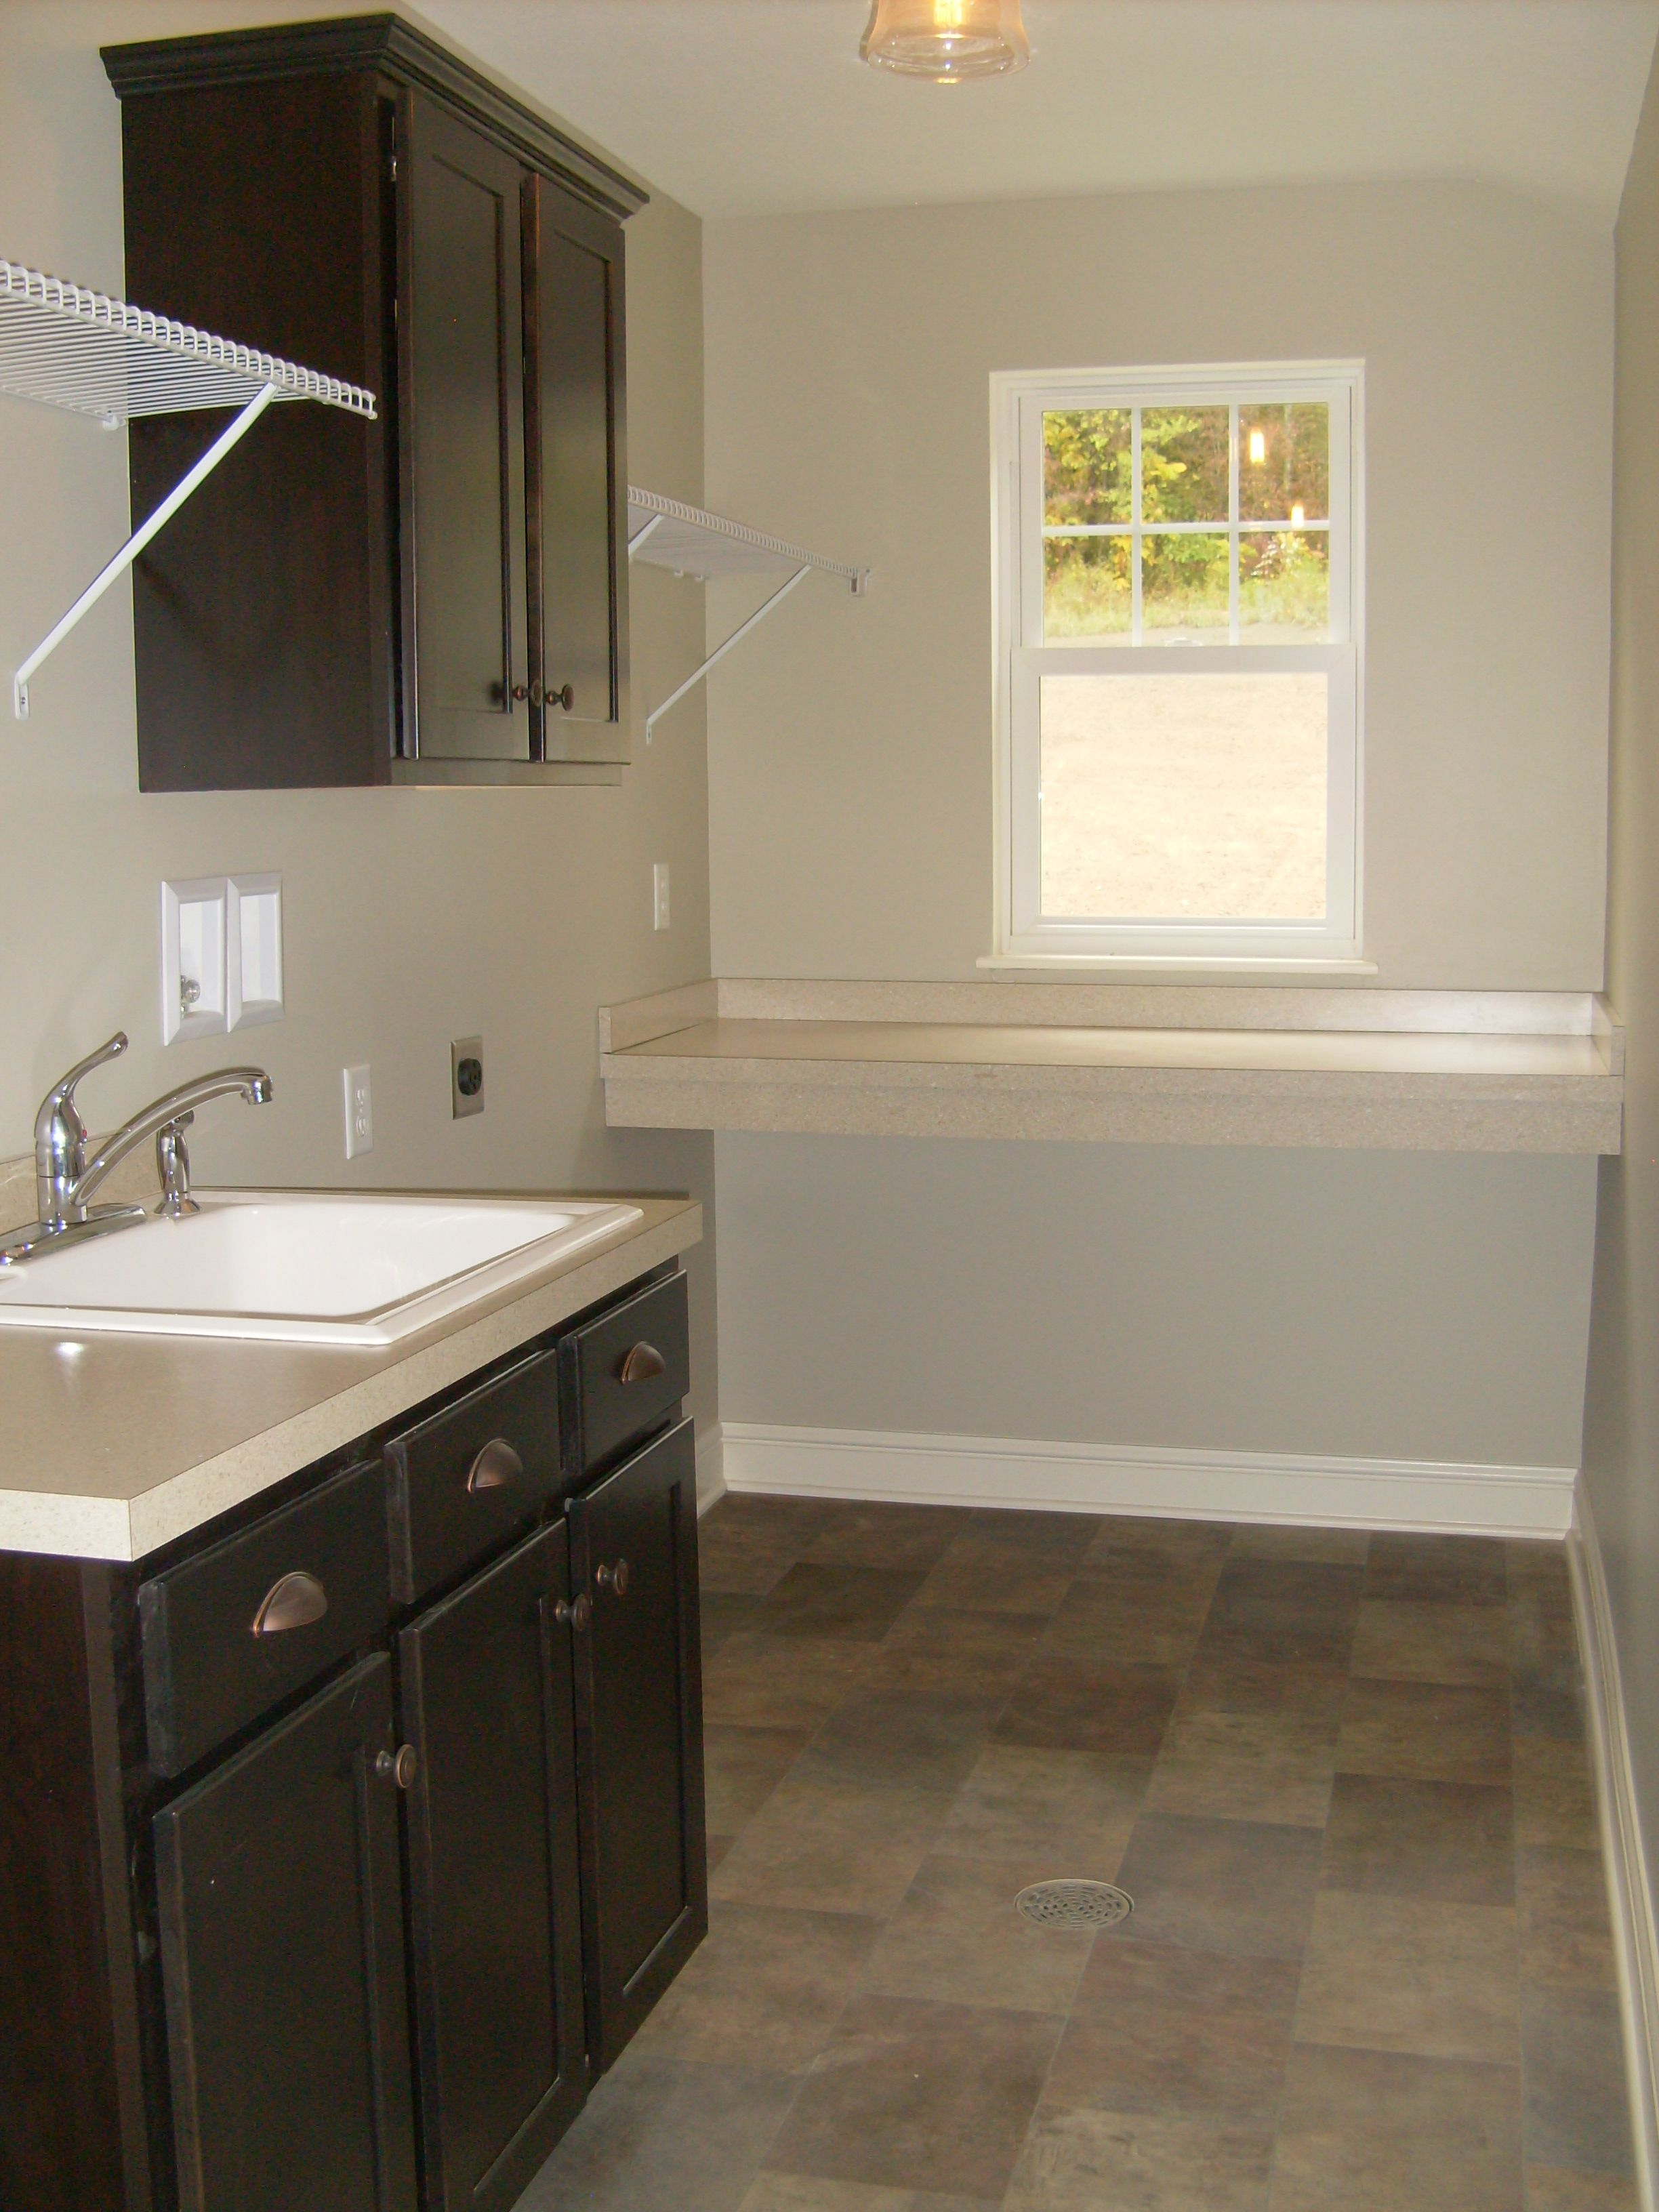 This Laundry Has Sarsaparilla Color Cabinets Laminate Counter Tops And A Drop In Laundry Sink Ref Keith Homes 304 Laundry Room Closet Laundry Sink Home